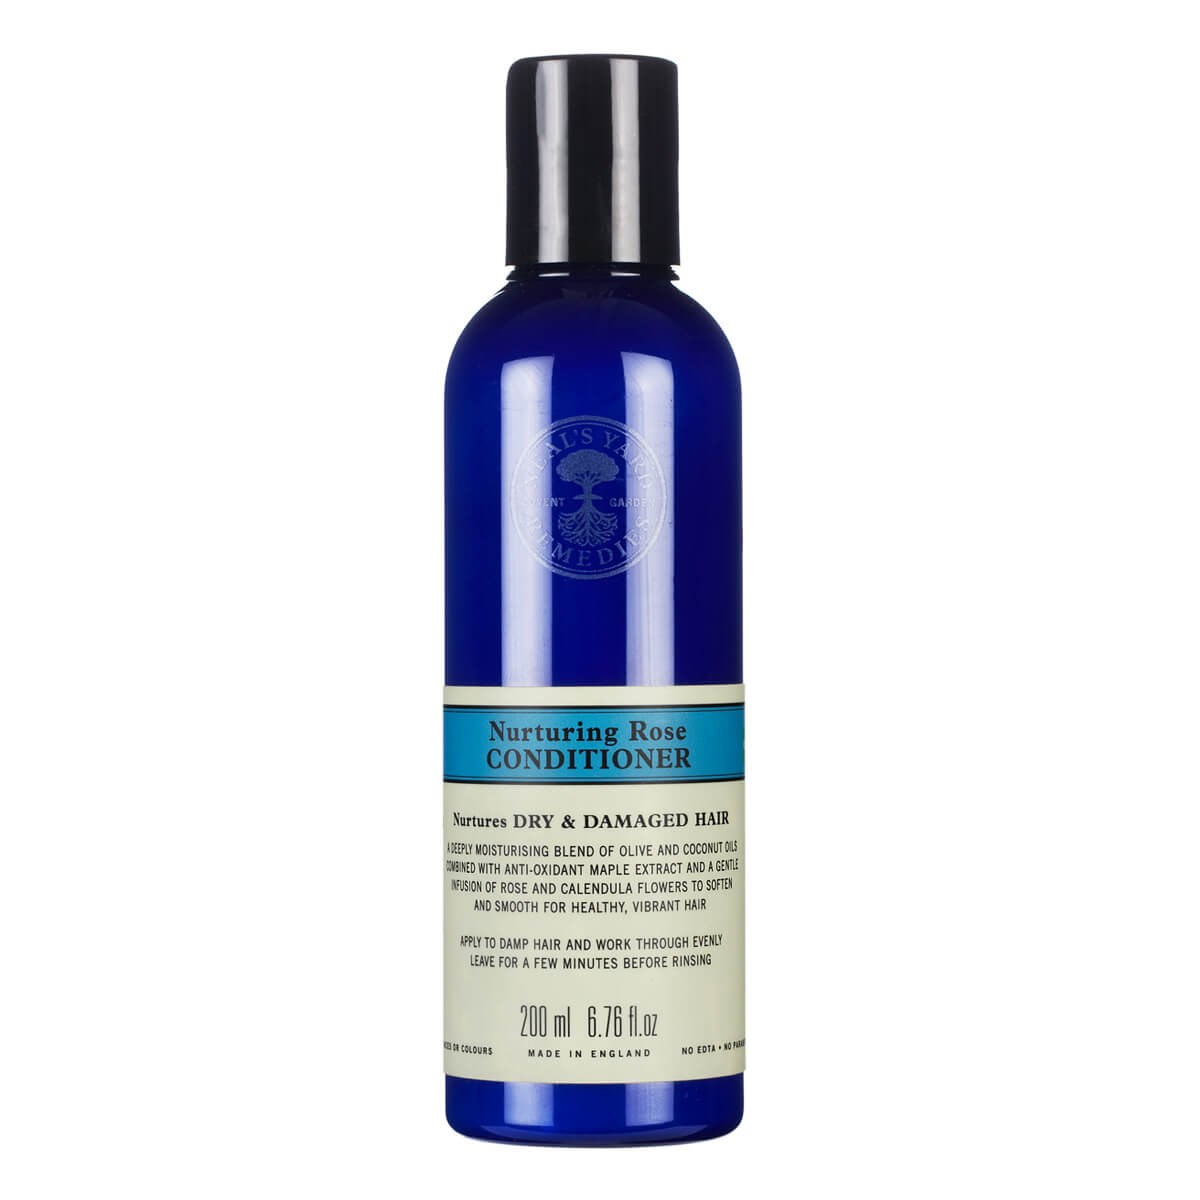 Neal's Yard Remedies Nurturing Rose Conditioner